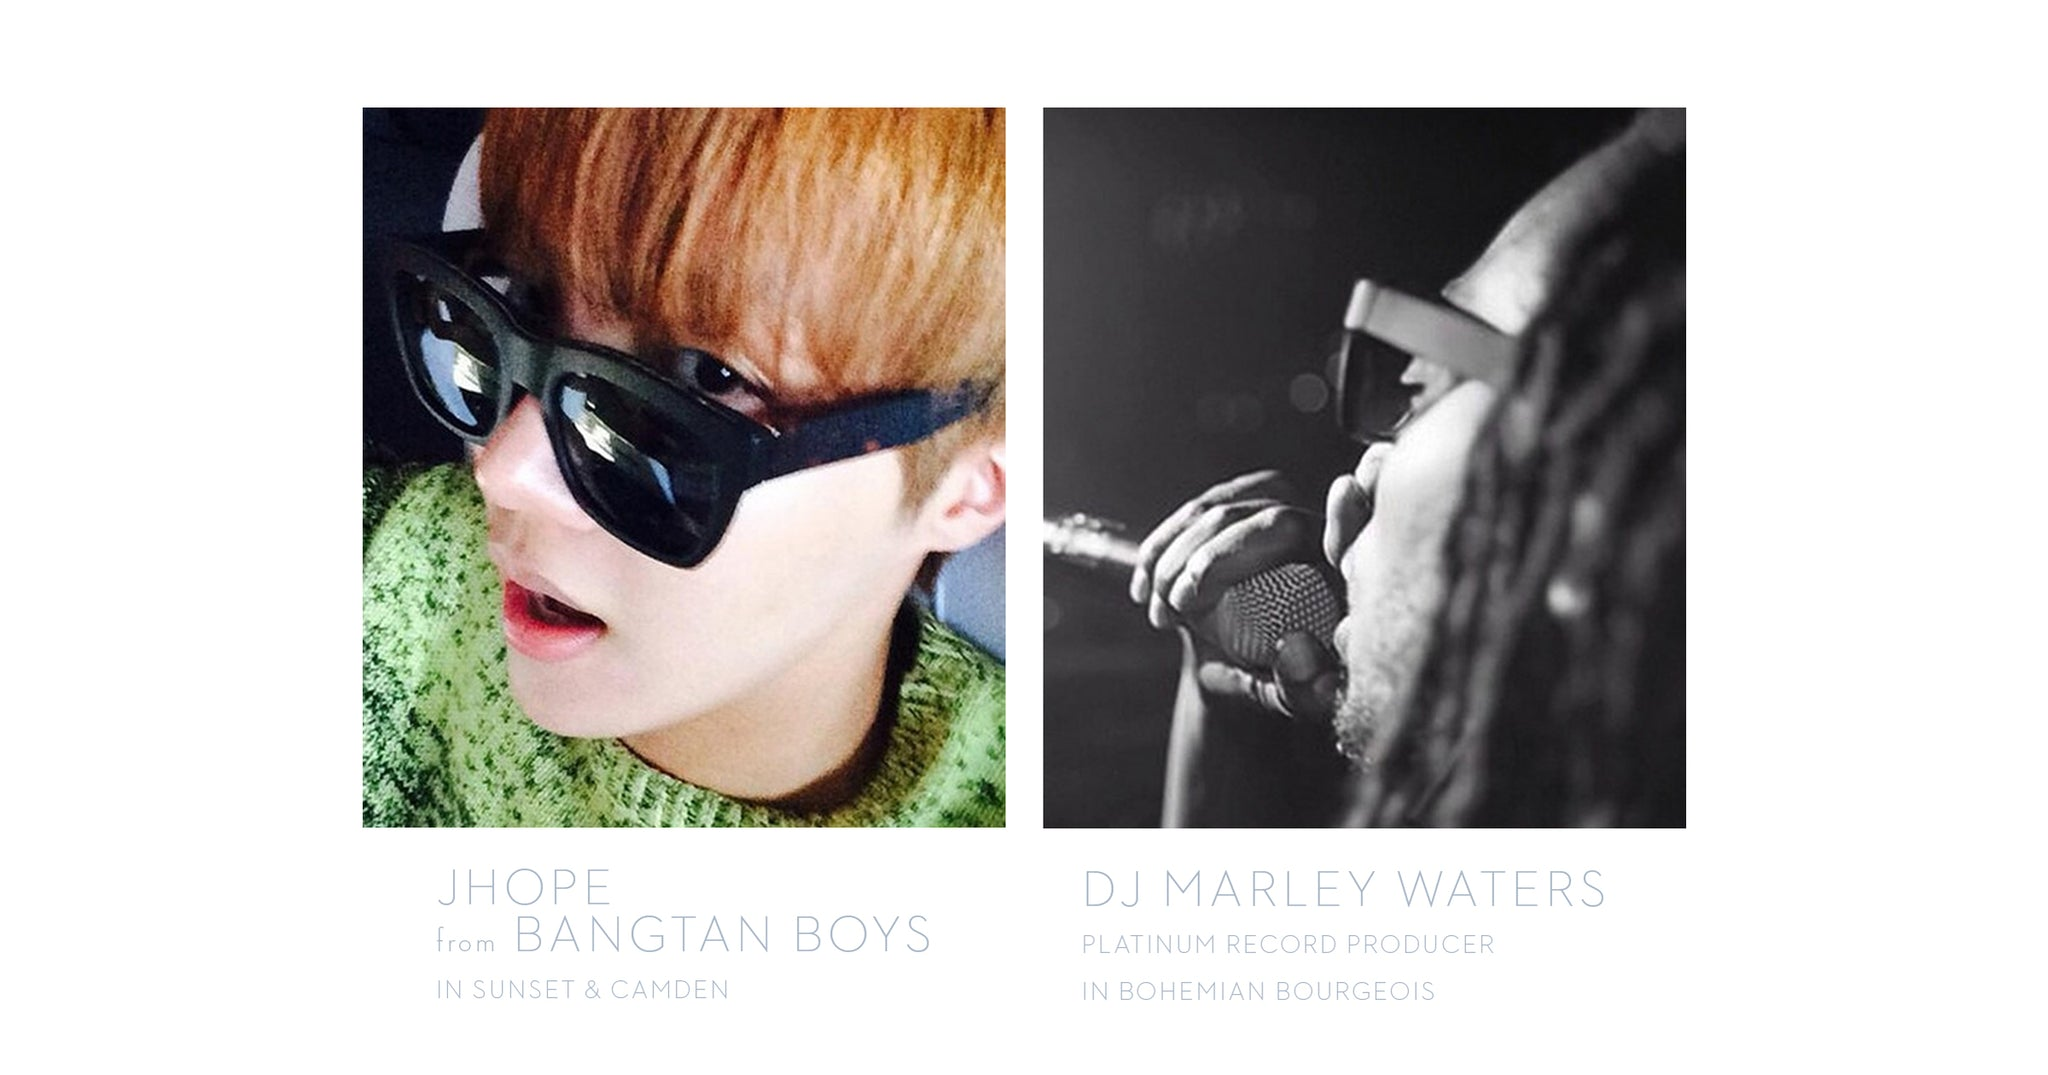 JHope from the Bangtan Boys wearing Sunset & Camden Sunglasses by Tyche & Iset Designer Eyewear